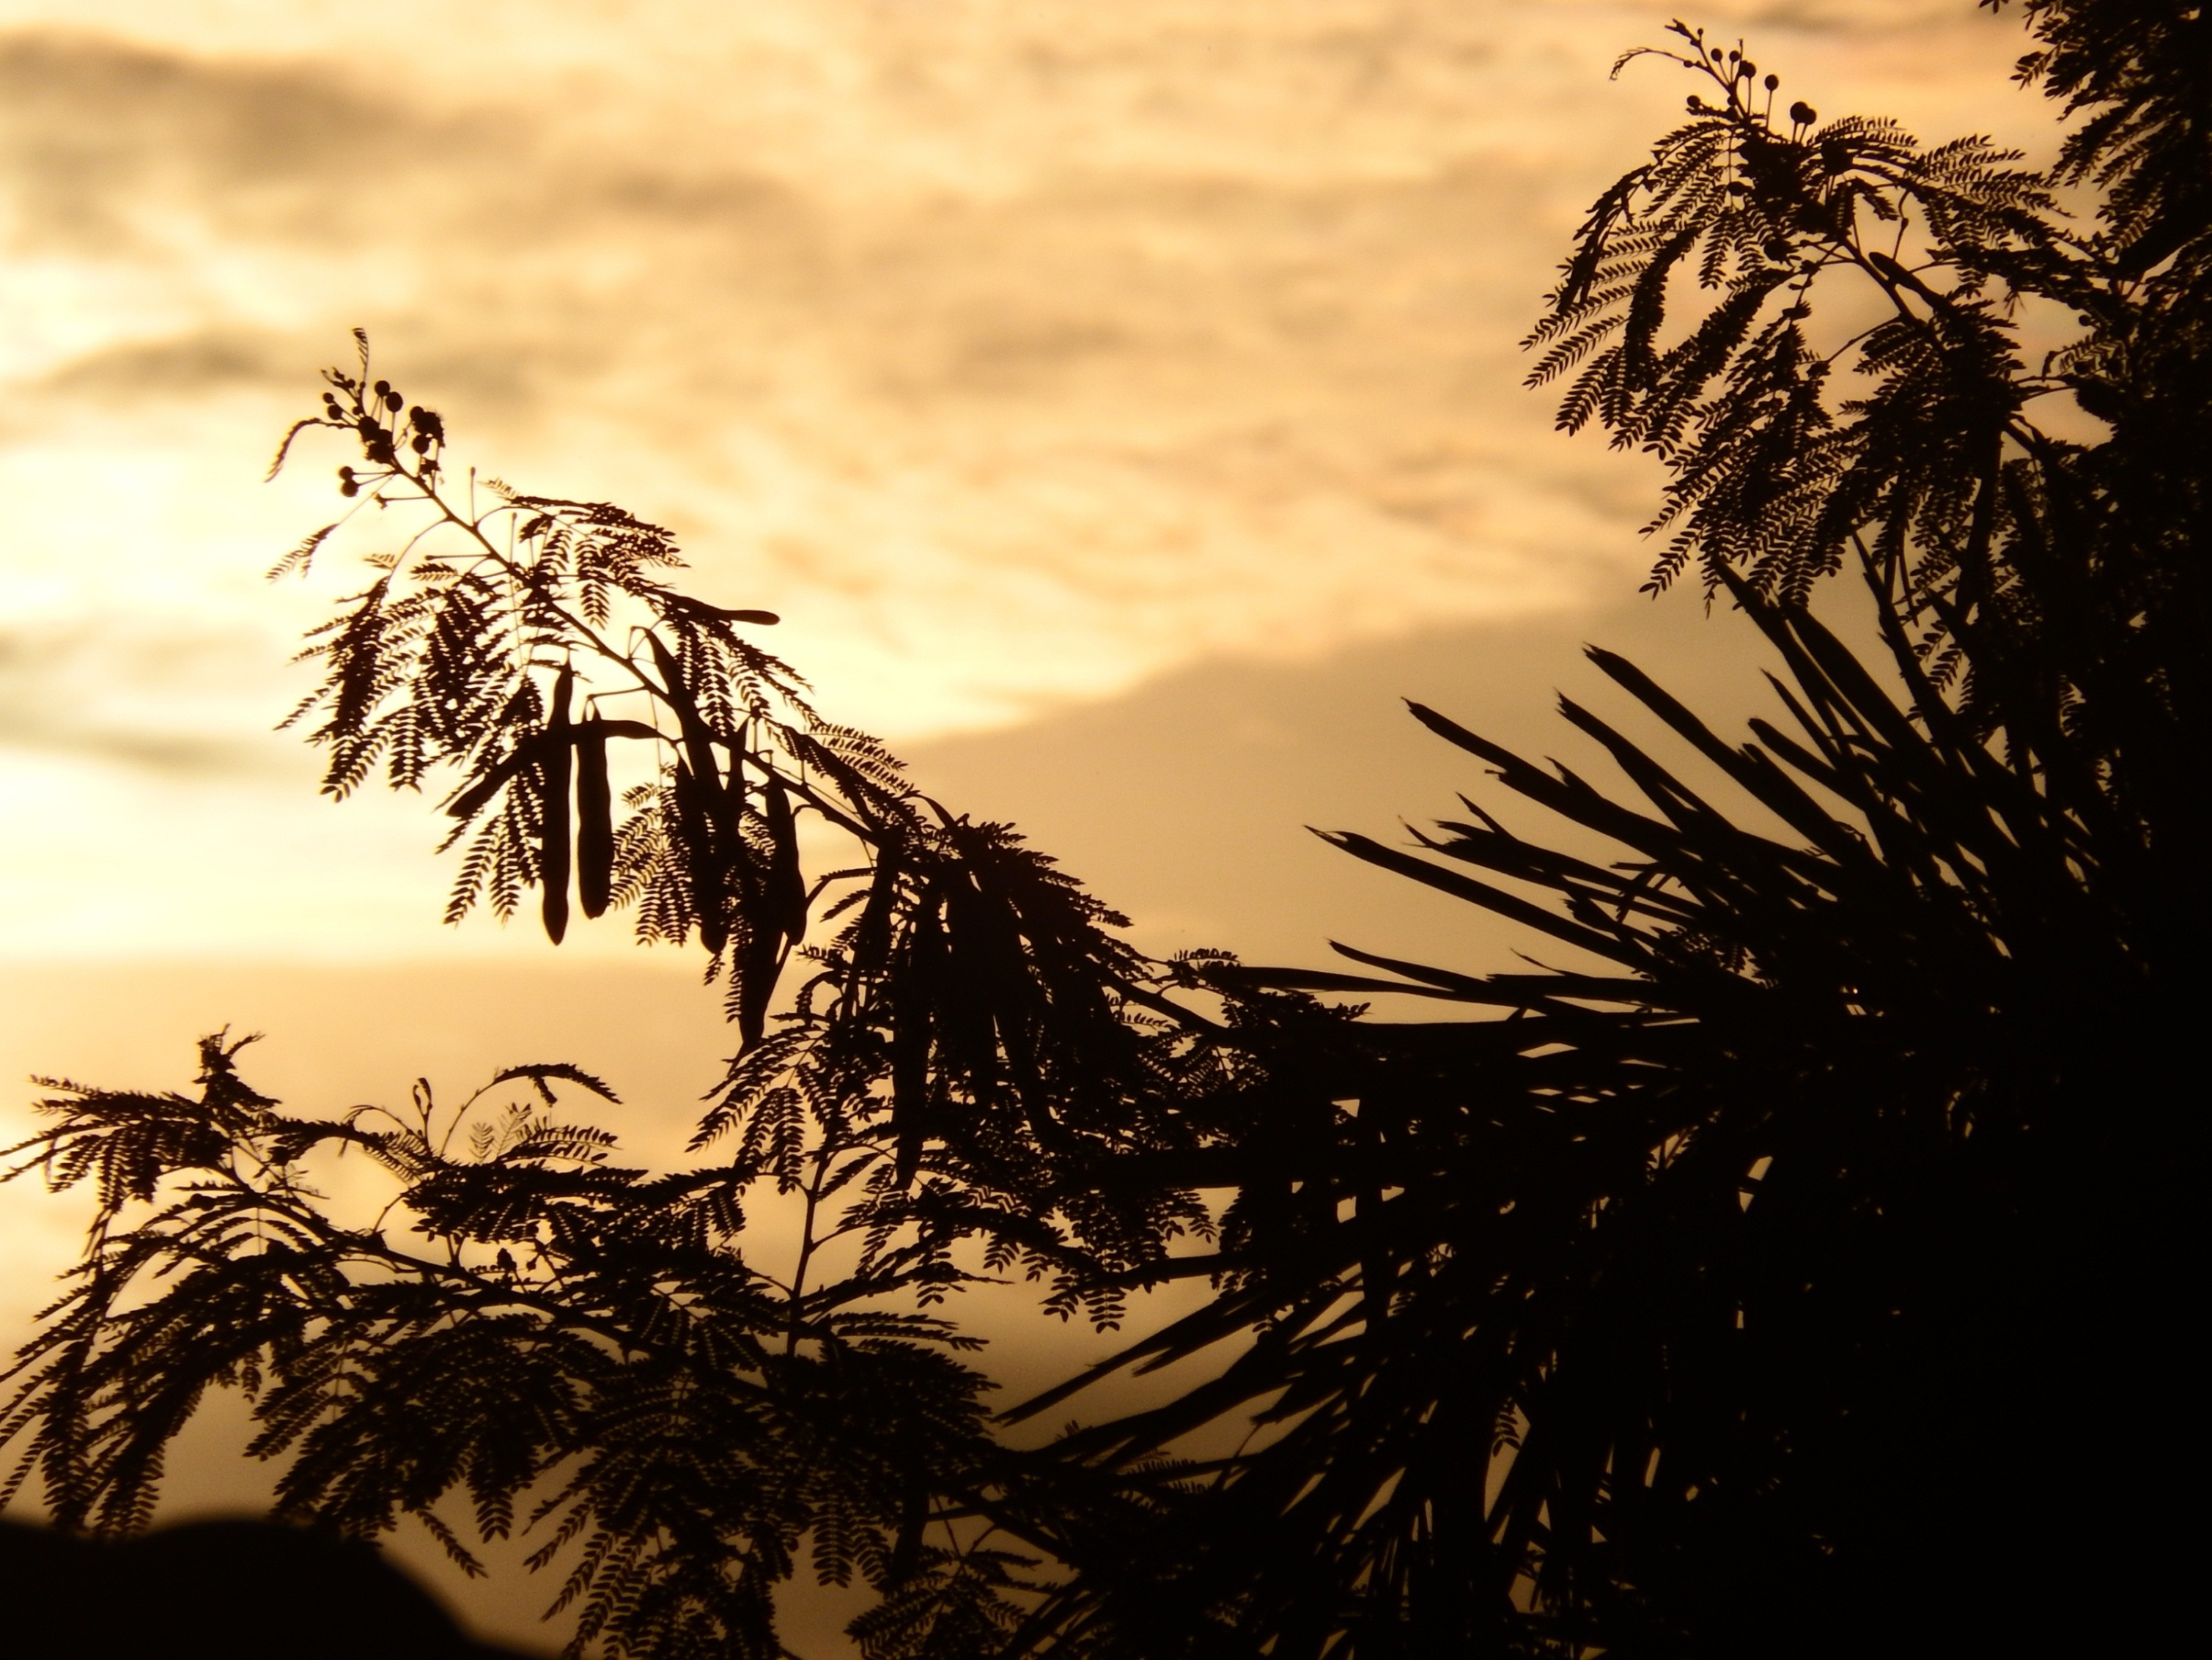 Tropical trees silhouette at sunset photo